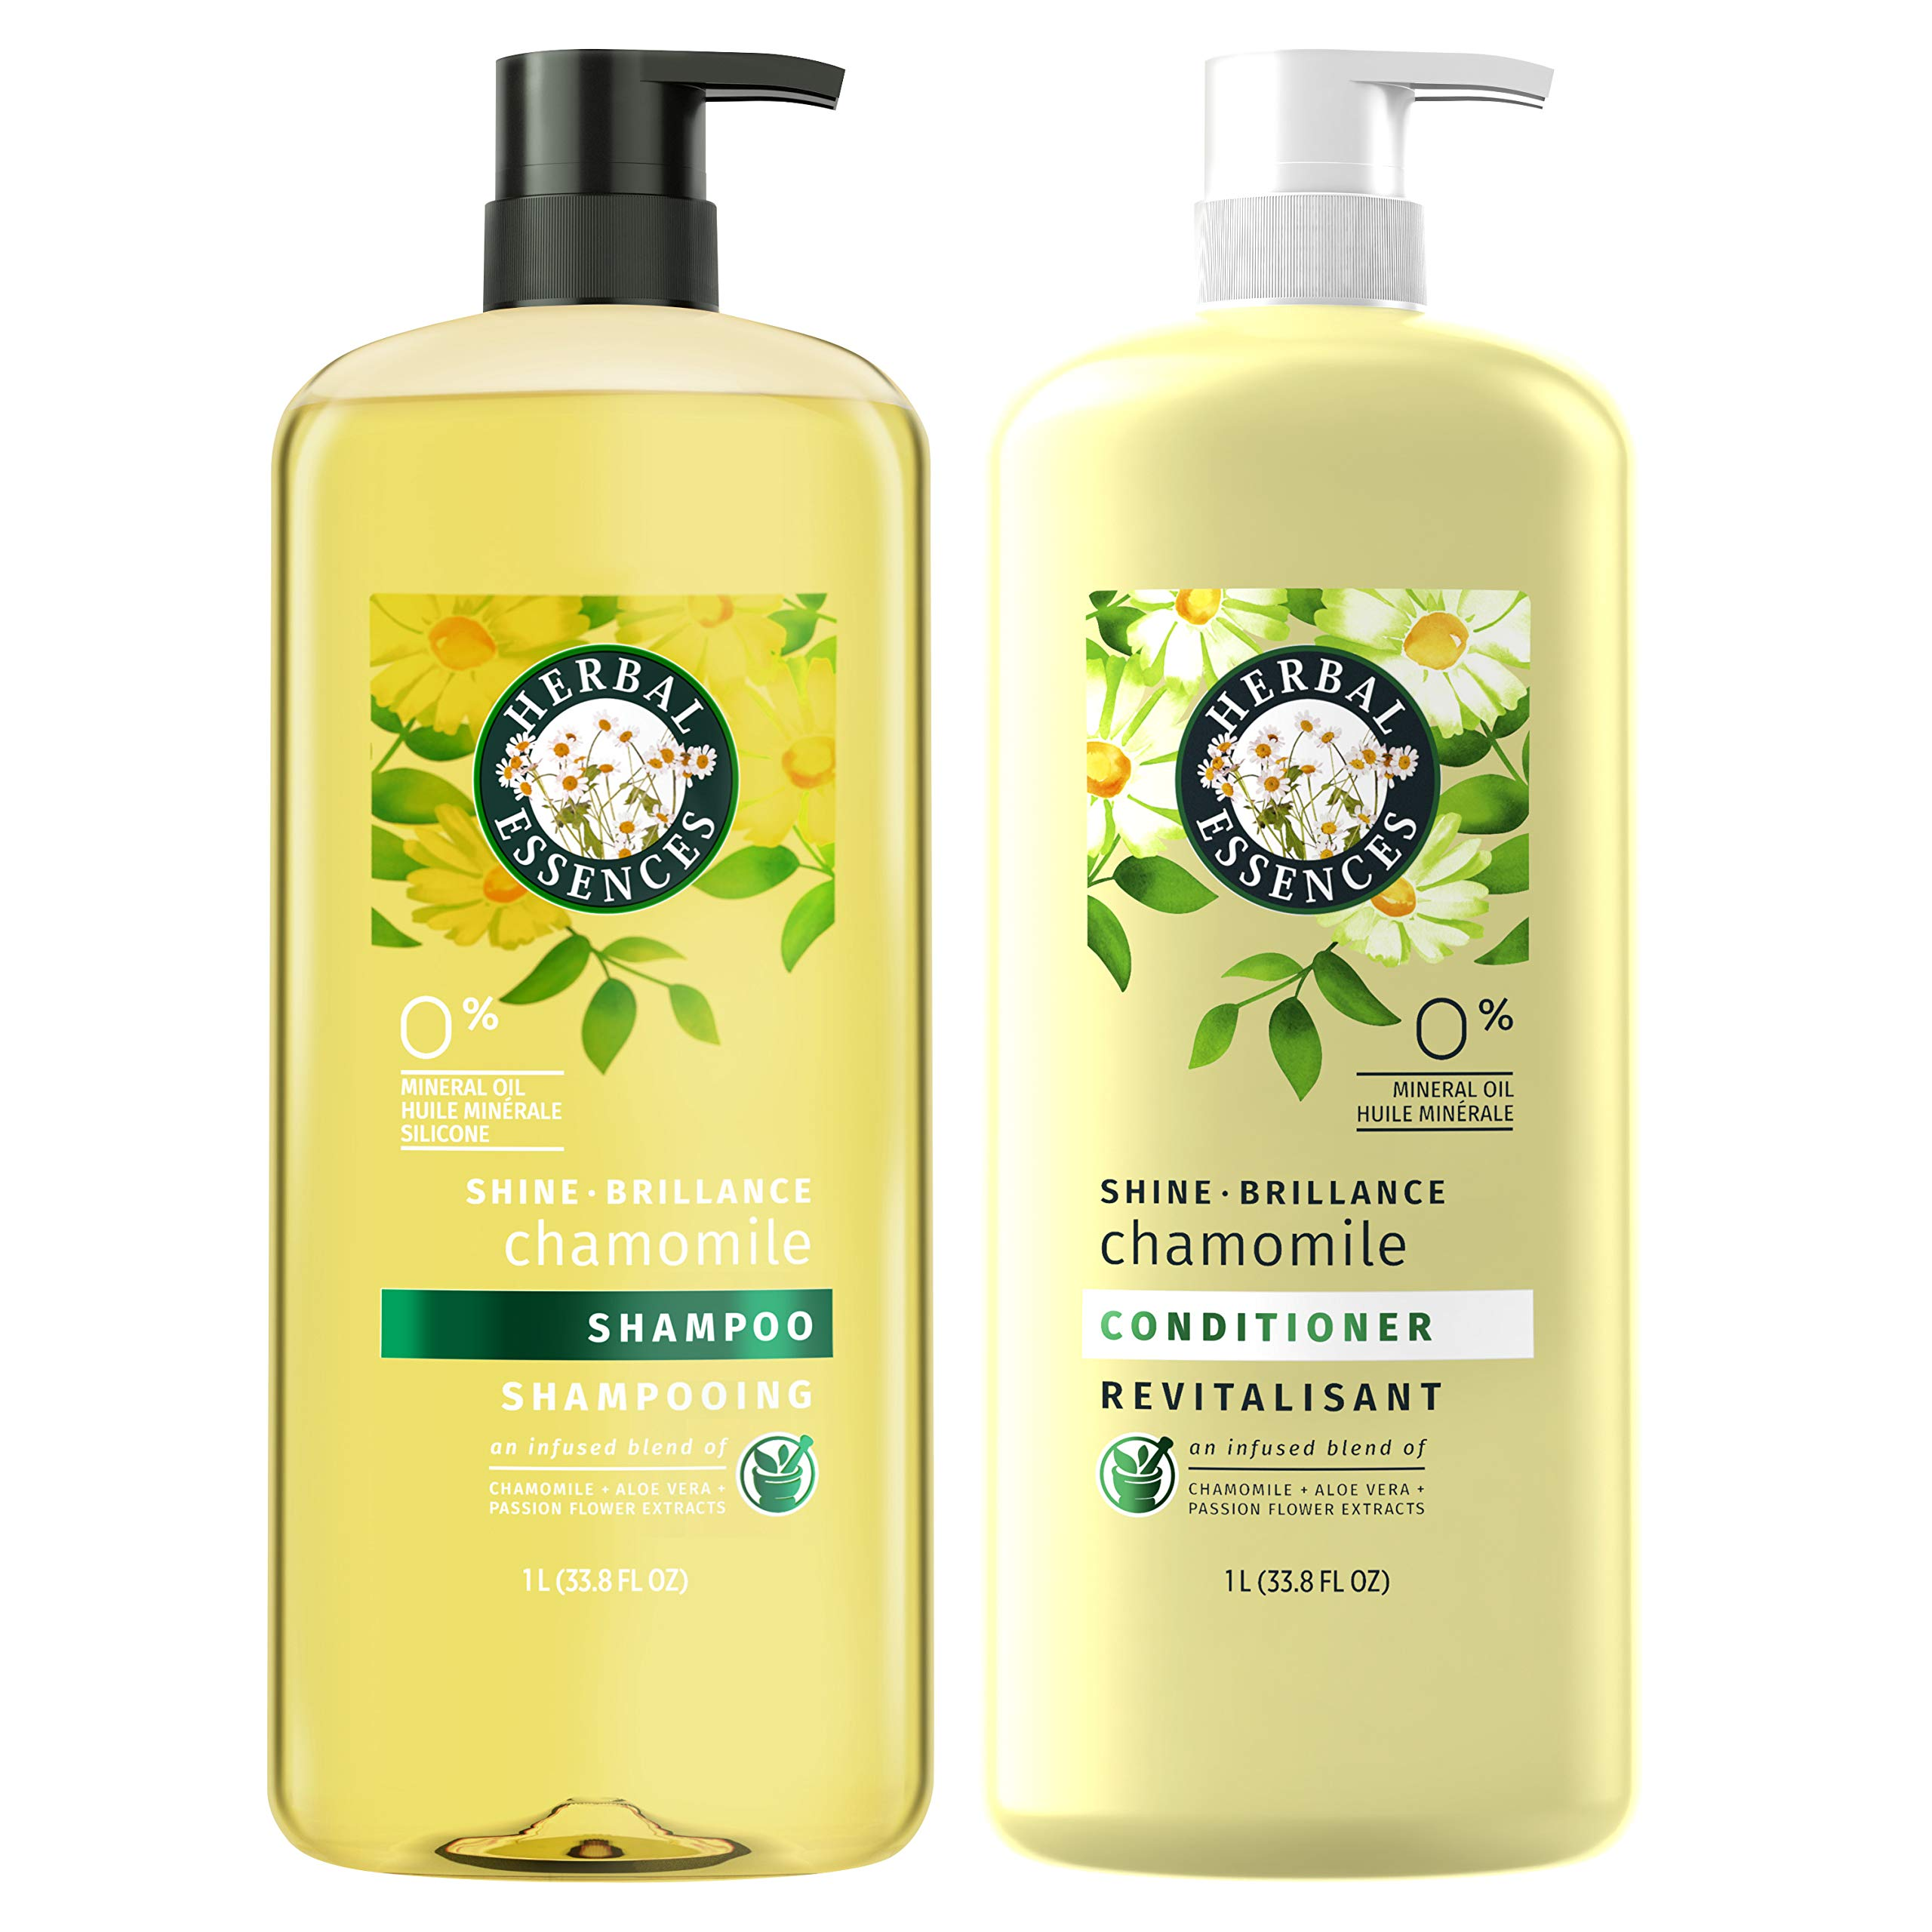 Herbal Essences, Shampoo and Paraben Free Conditioner Kit, Shine Collection, 33.8 fl oz, Kit by Herbal Essences